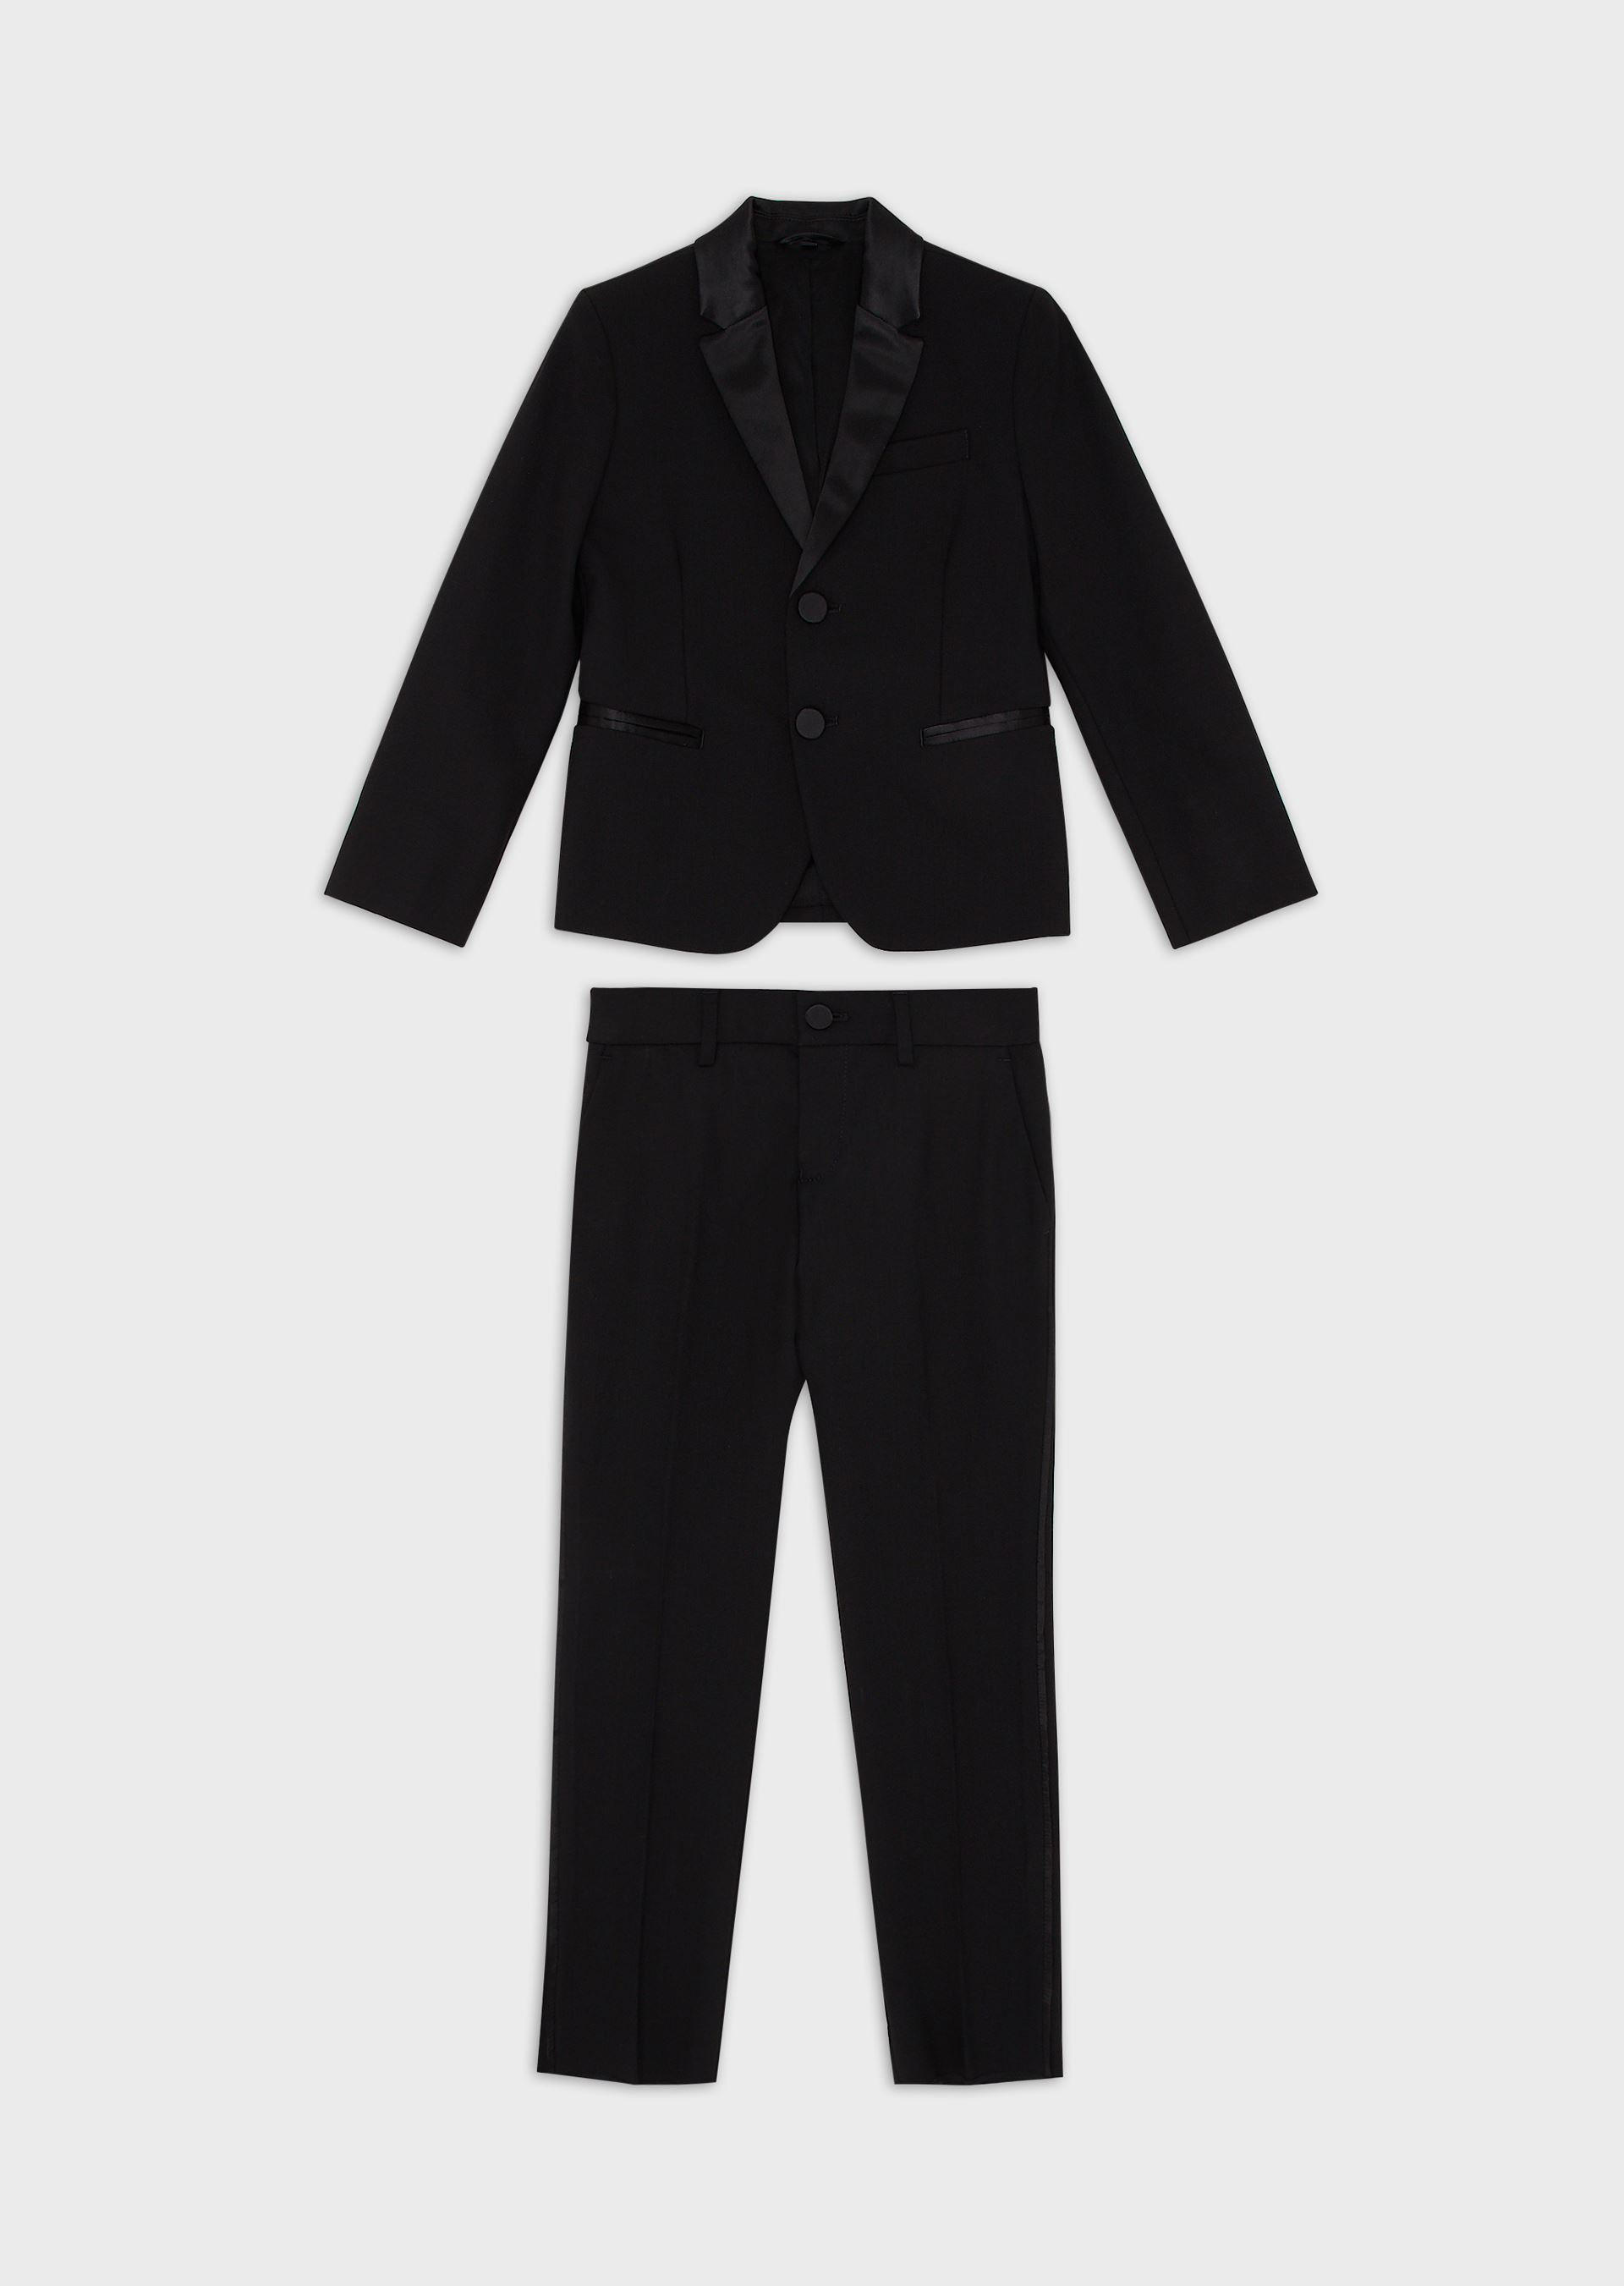 EMPORIO ARMANI Virgin wool single-breasted suit with satin profiles